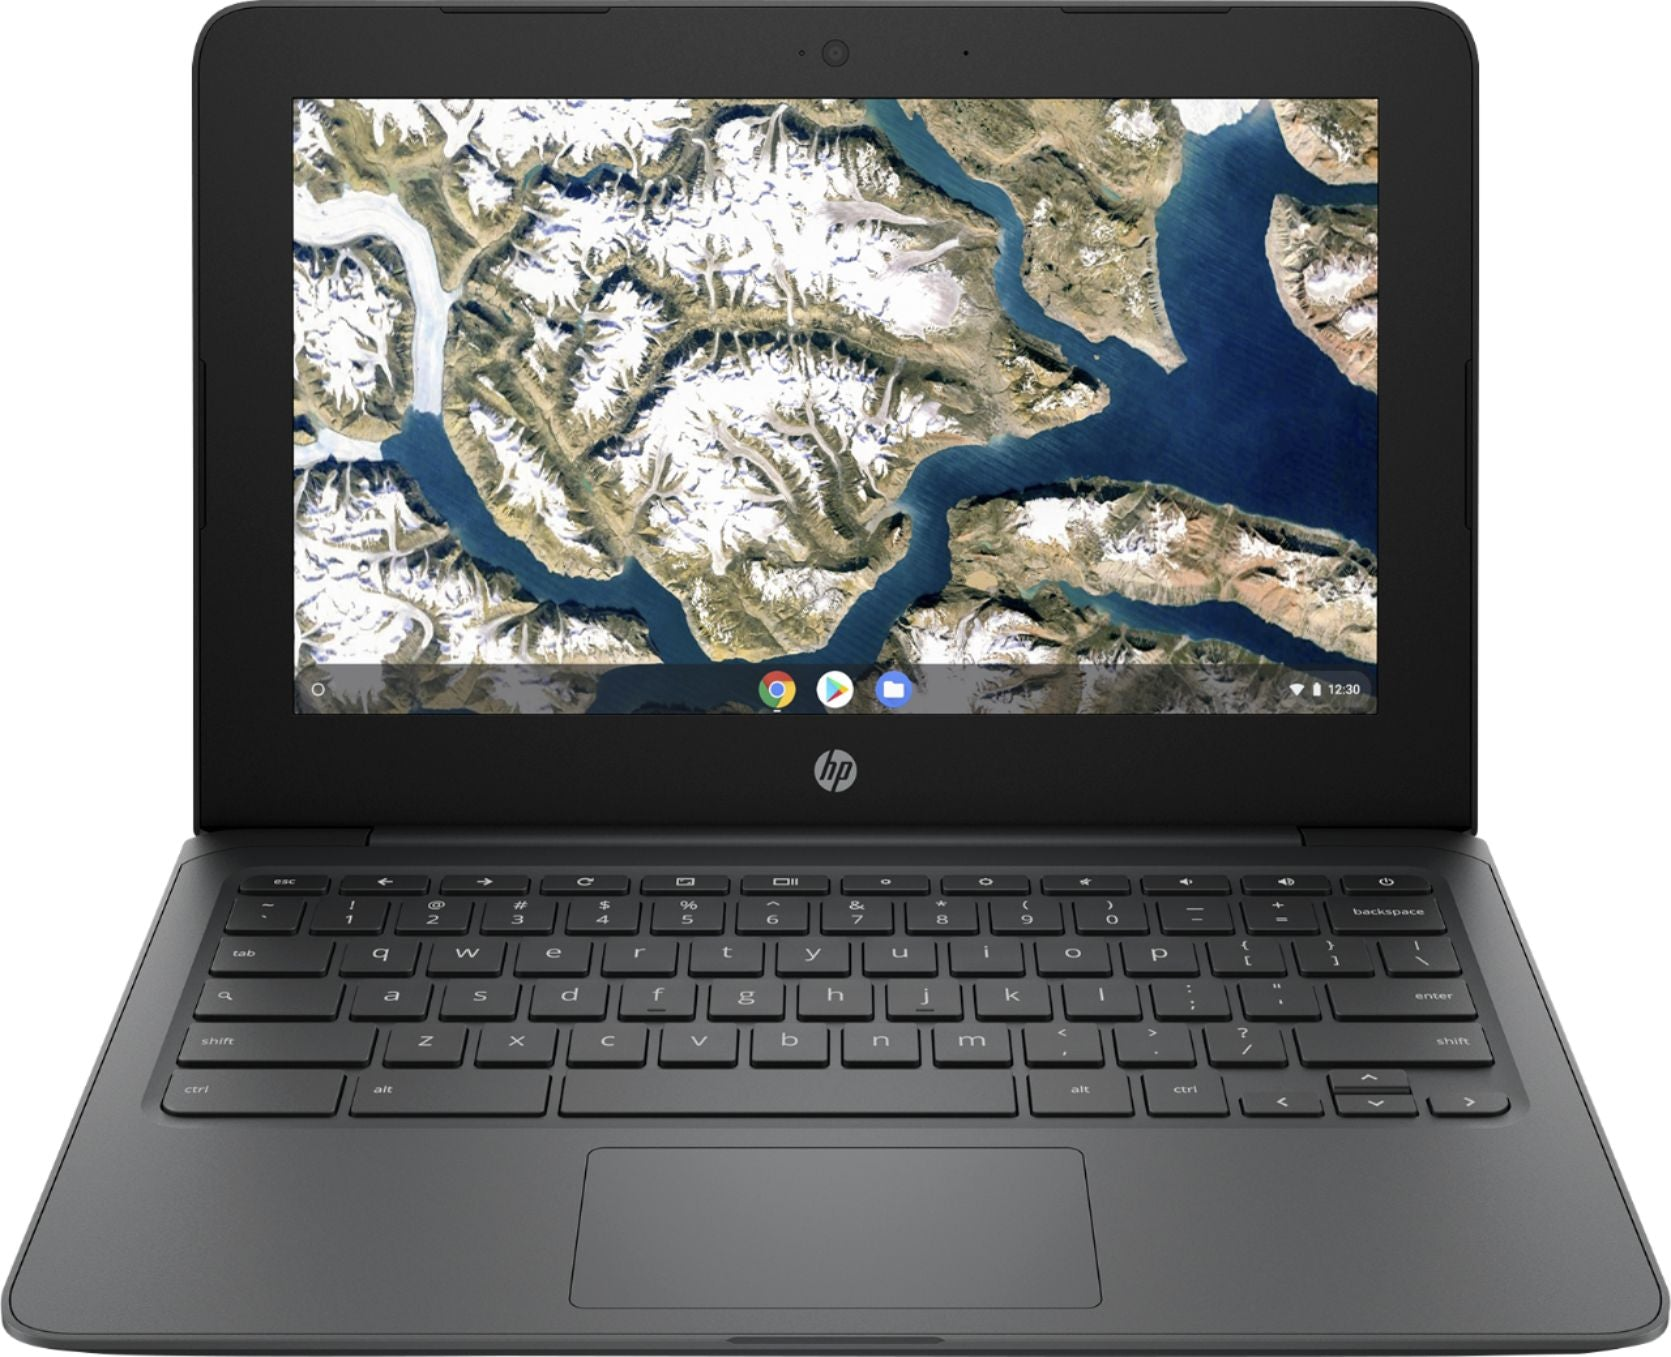 "HP - 11.6"" Chromebook - Intel Celeron - 4GB Memory - 32GB eMMC Flash Memory - Ash Gray - Rite Gadgets"